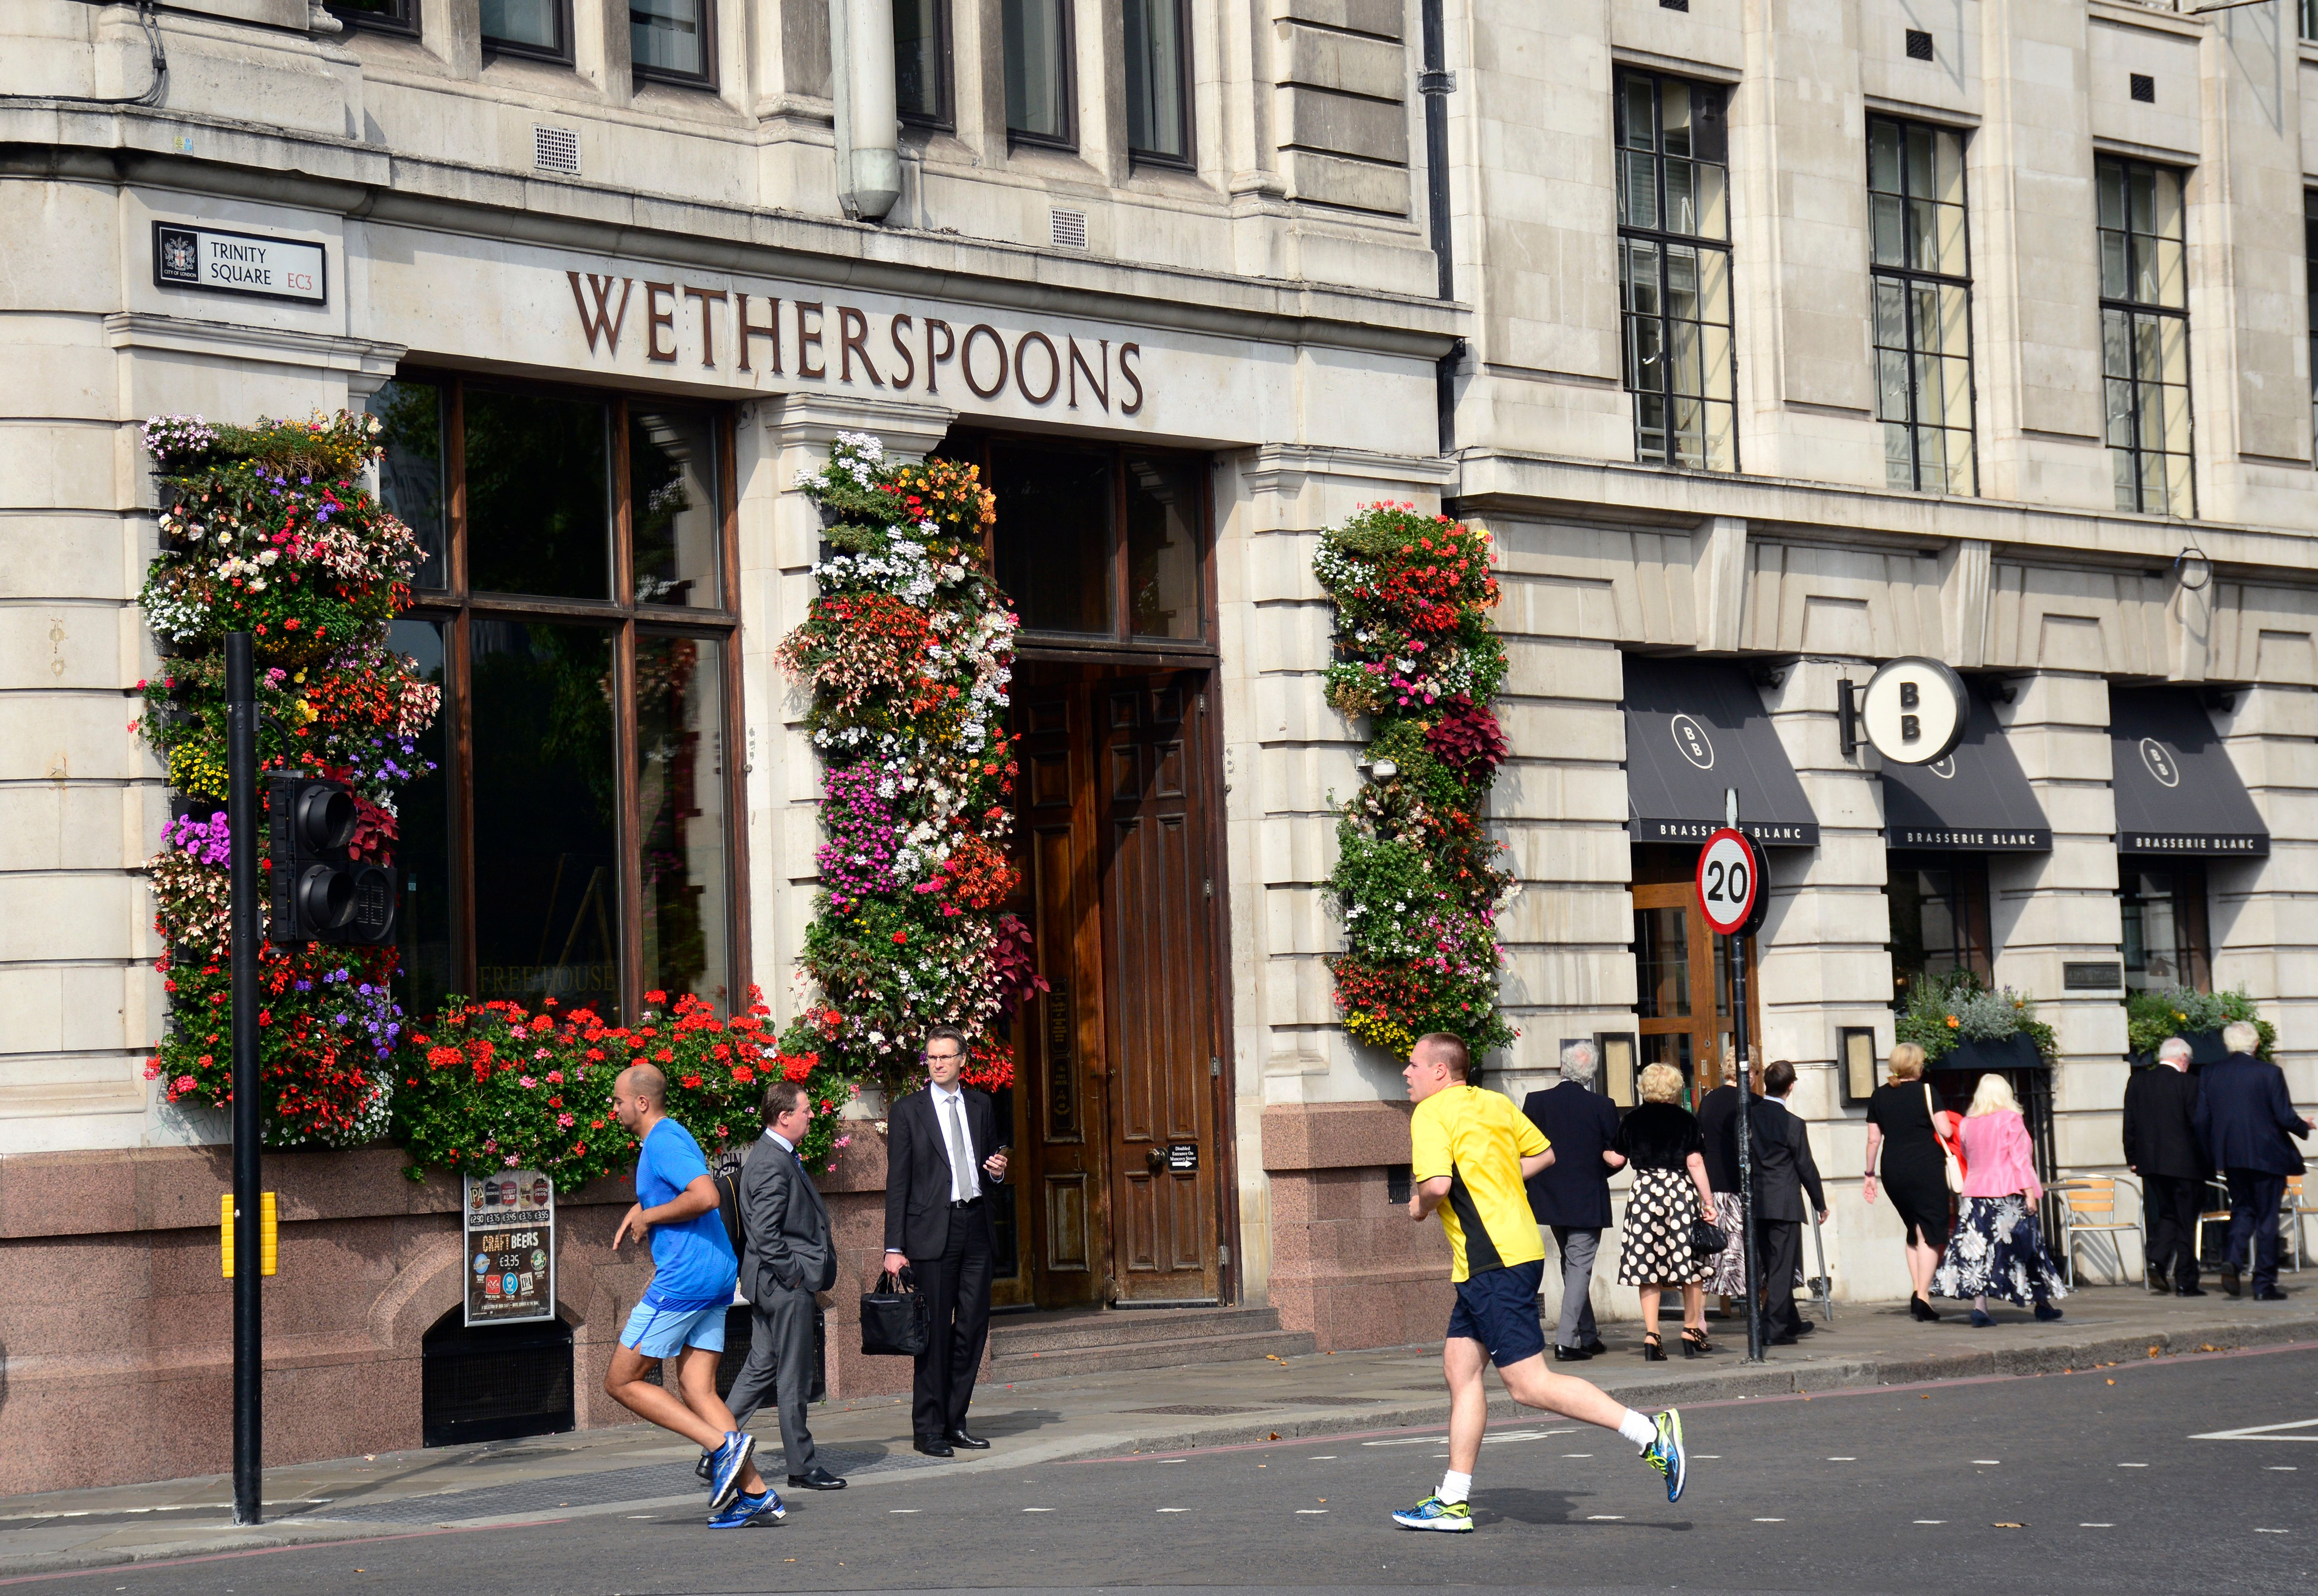 Drinks In Wetherspoon's Could Soon Cost More To Fund Higher Staff